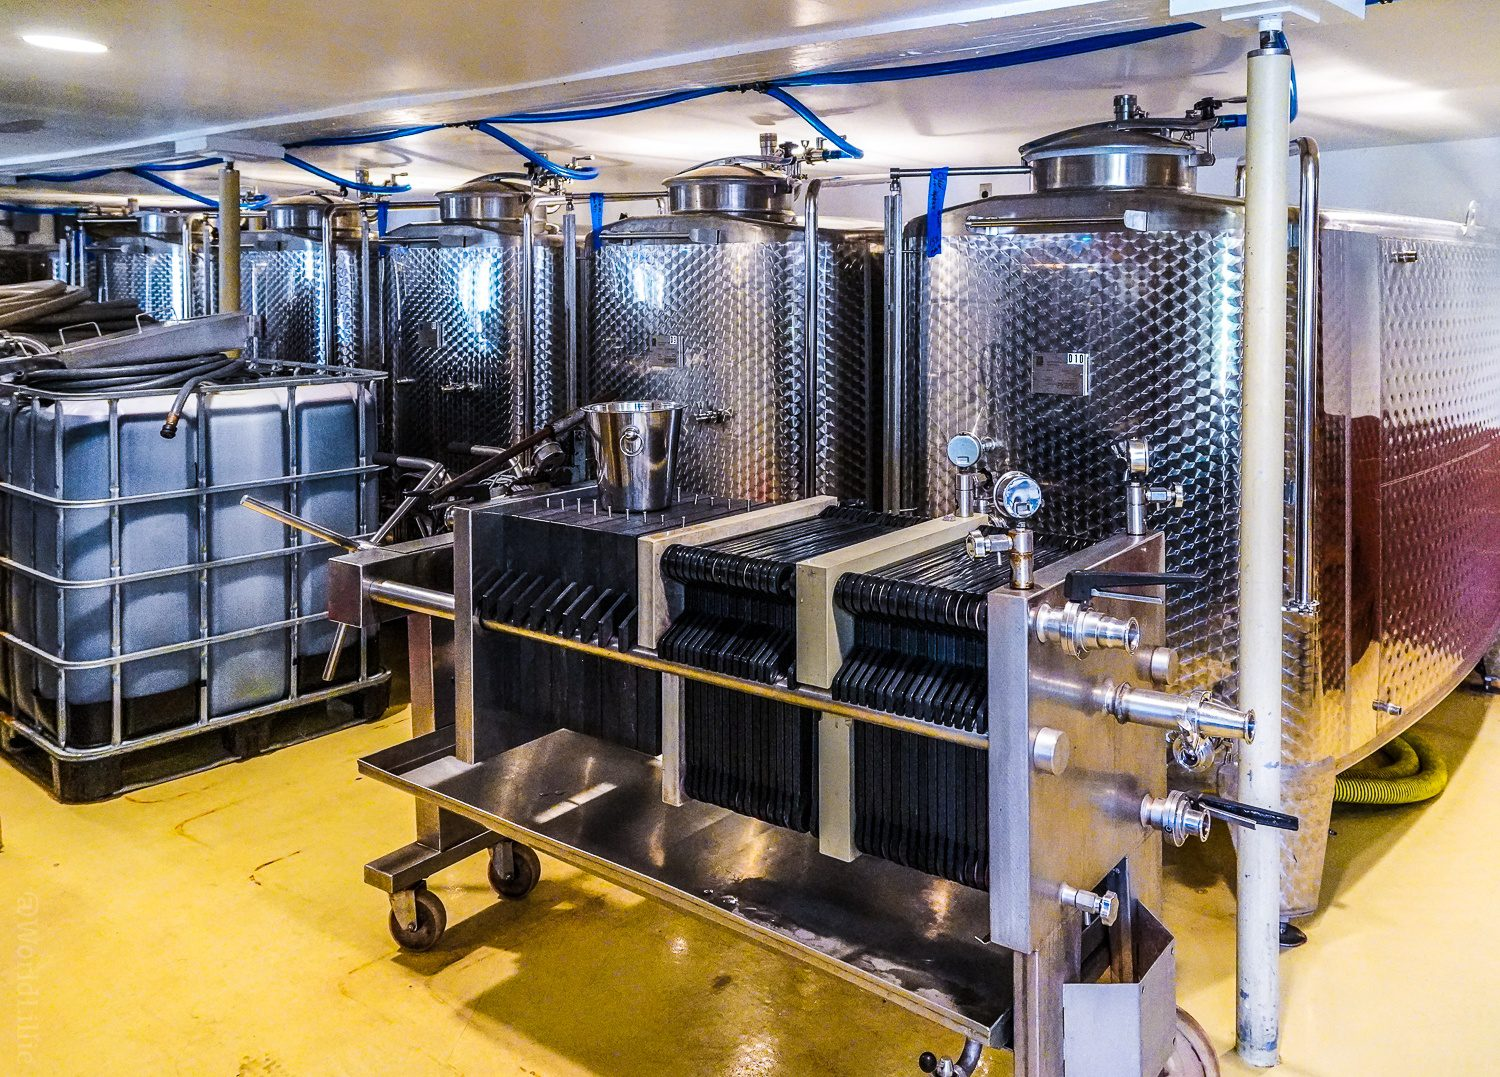 Making wine with stainless steel tanks